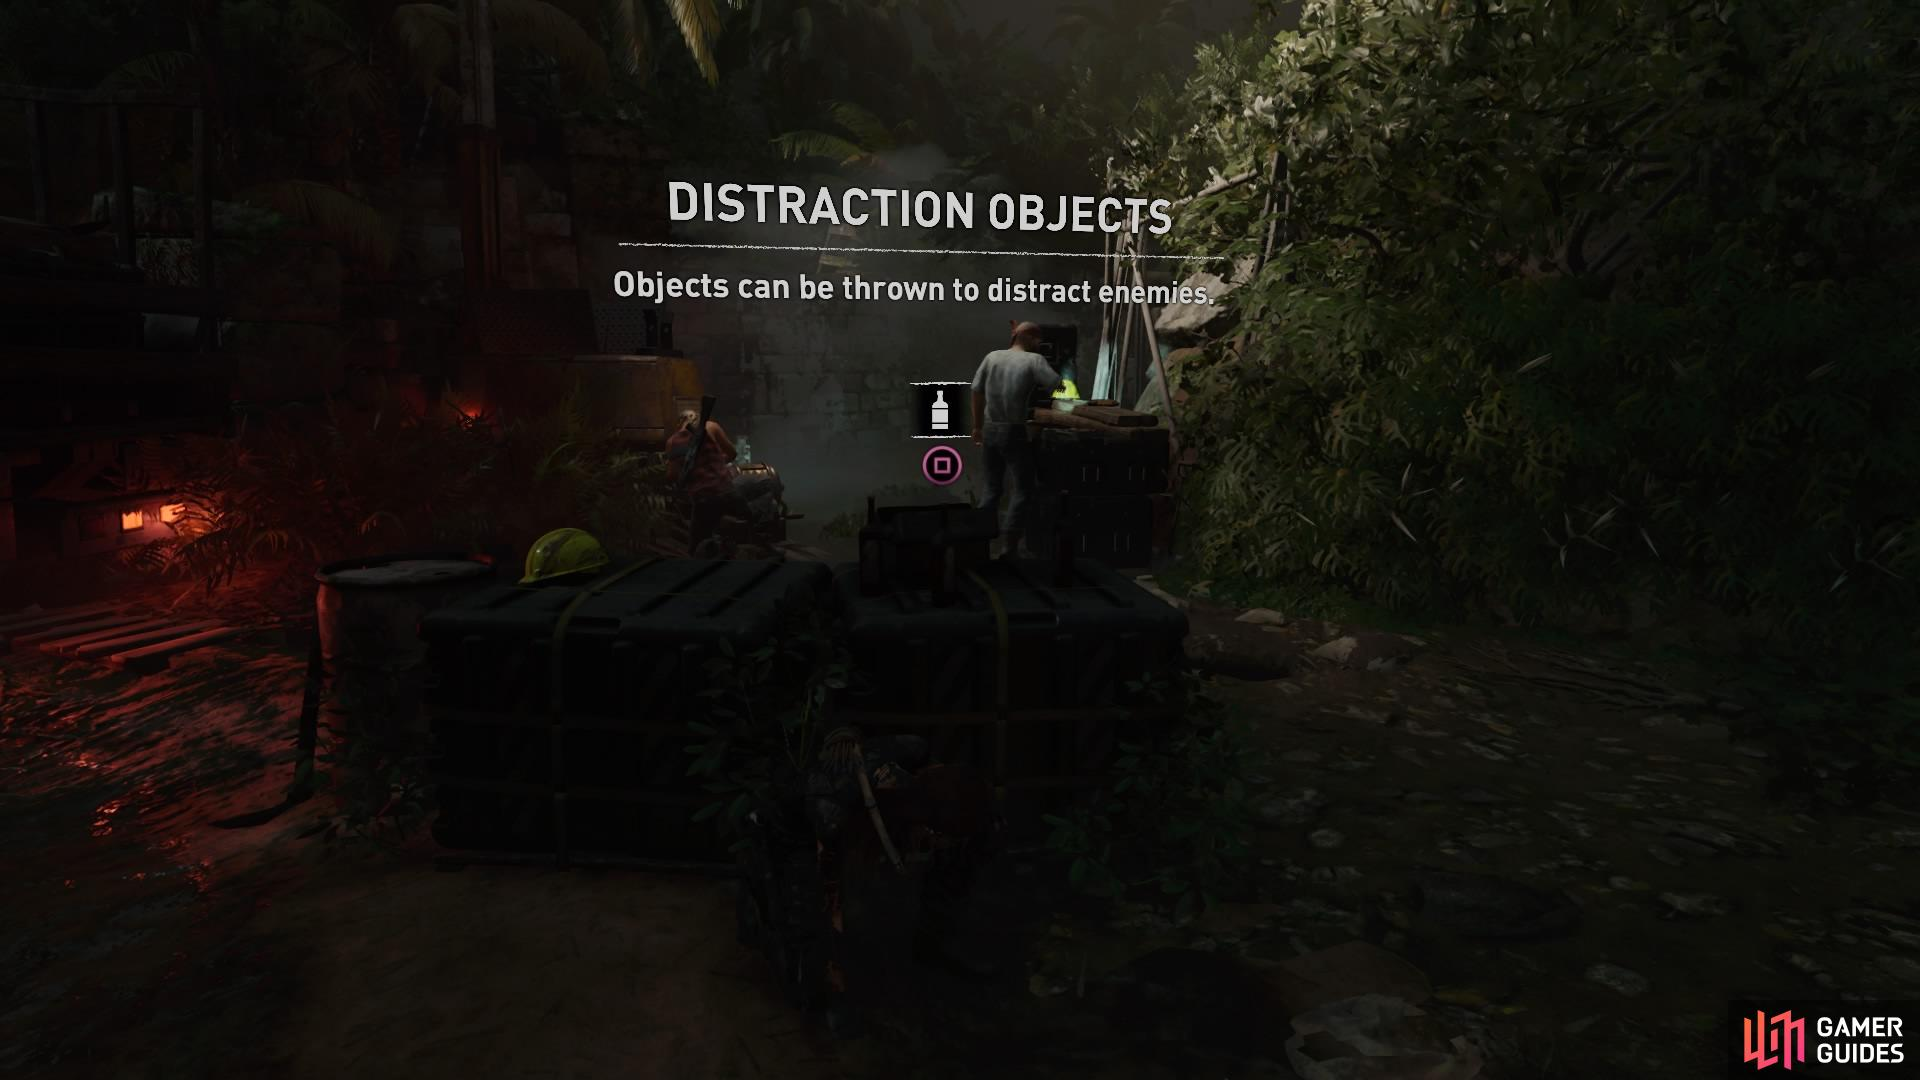 Use objects to distract enemies and isolate them